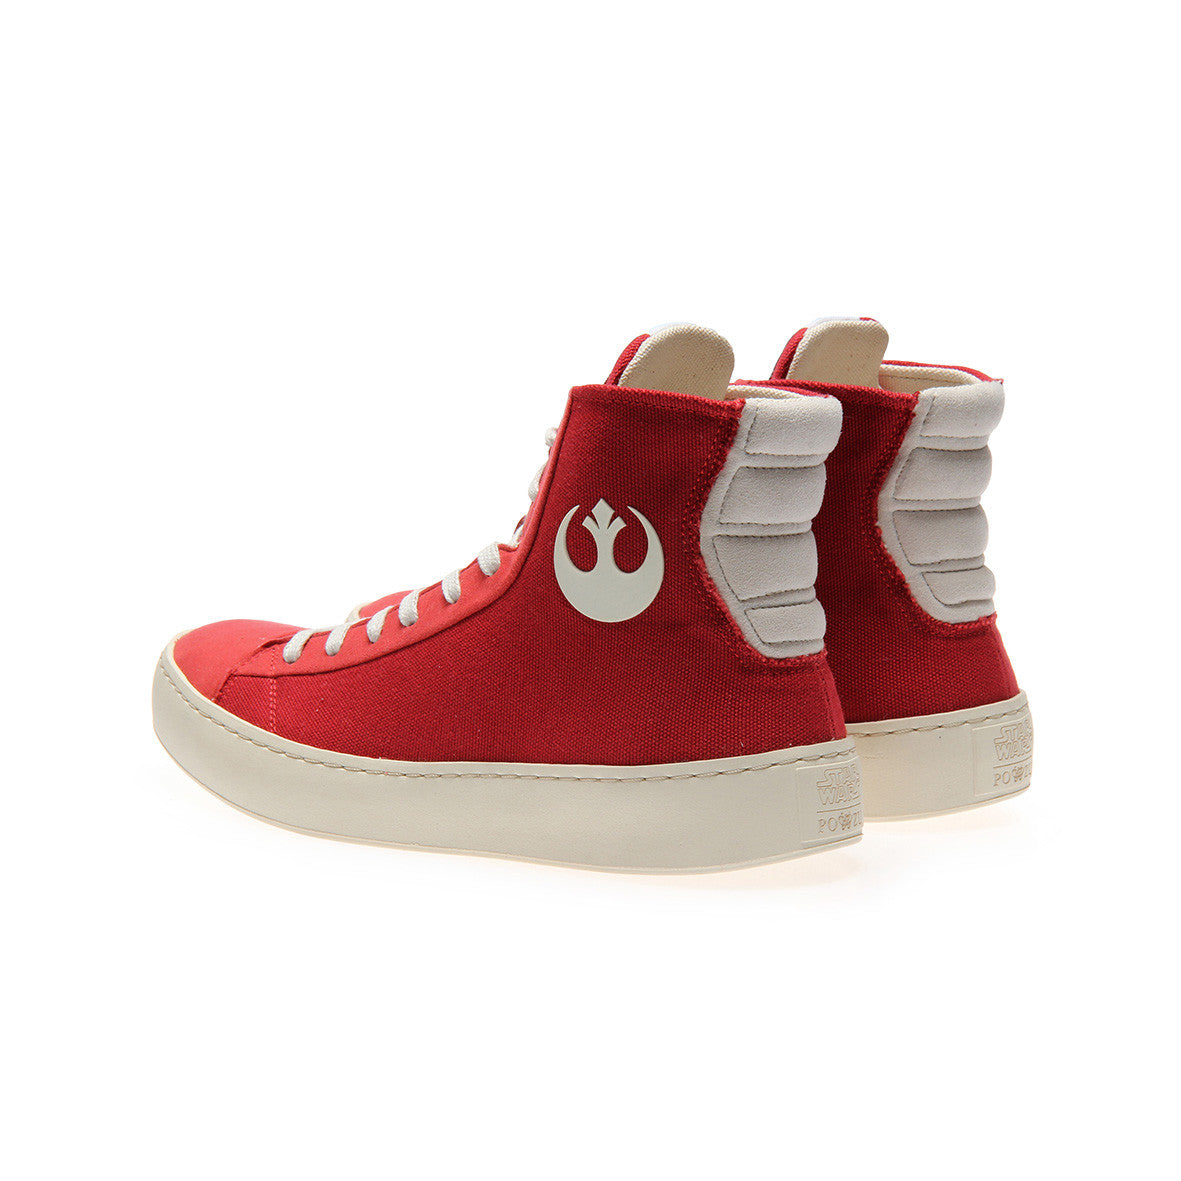 8f929129f7 OFFICIAL Star Wars Mens RESISTANCE Red High Top Sneaker